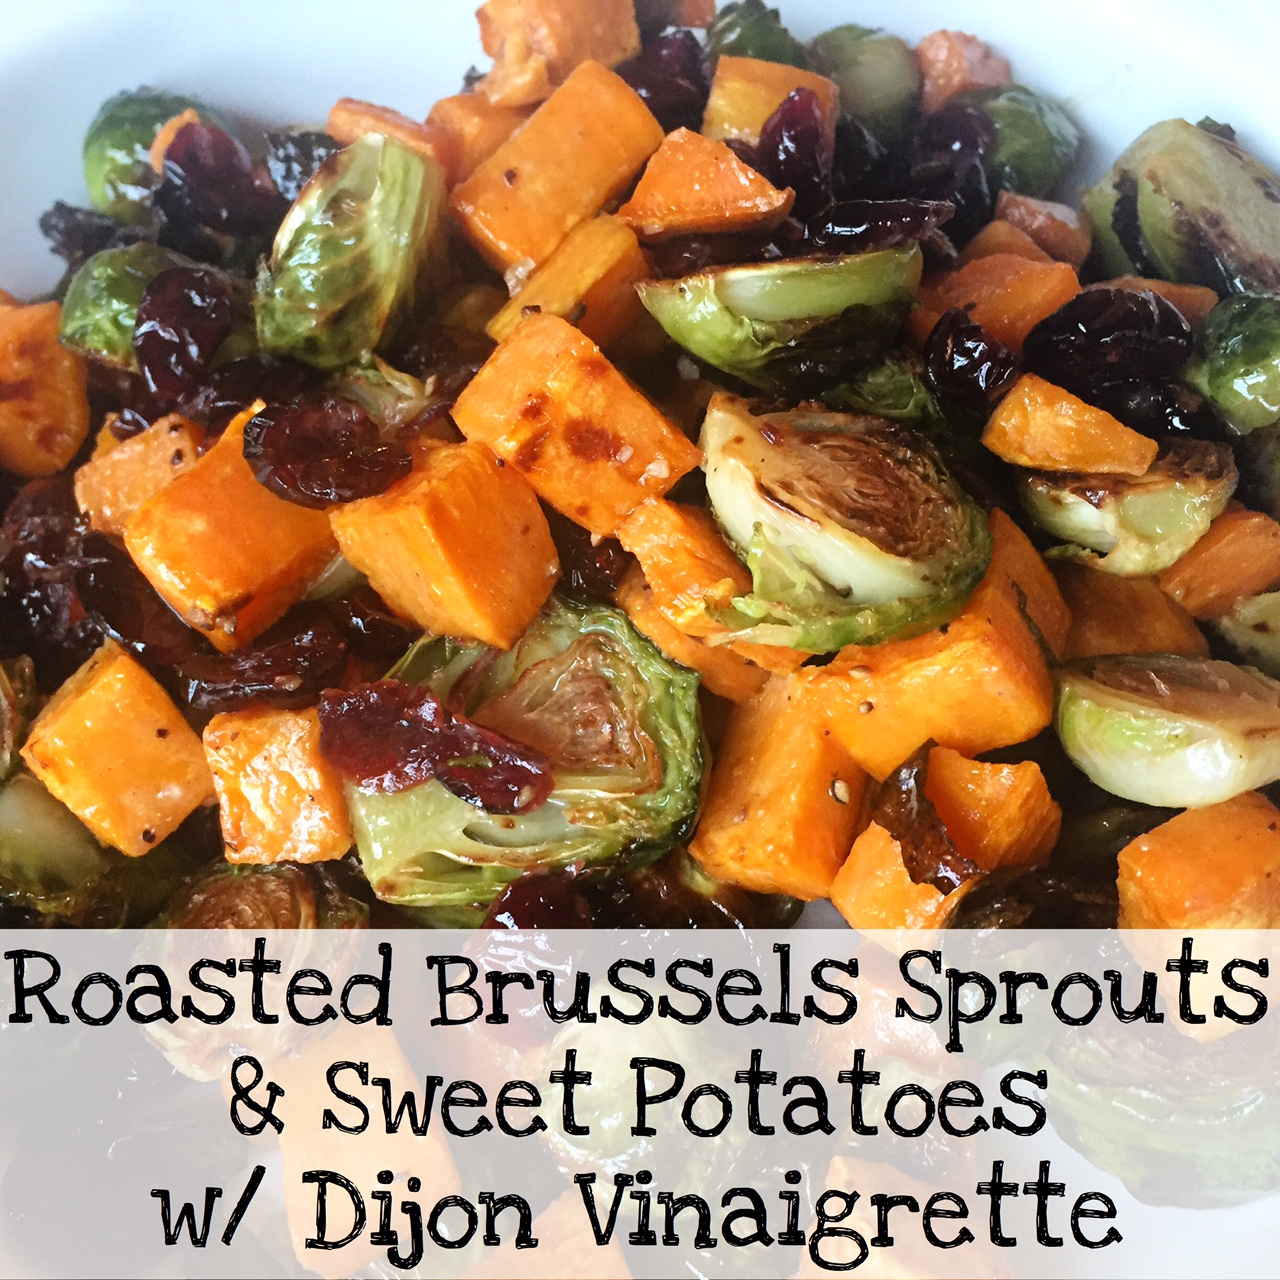 Roasted Brussels Sprouts & Sweet Potatoes with Dijon Vinaigrette - Jen ...